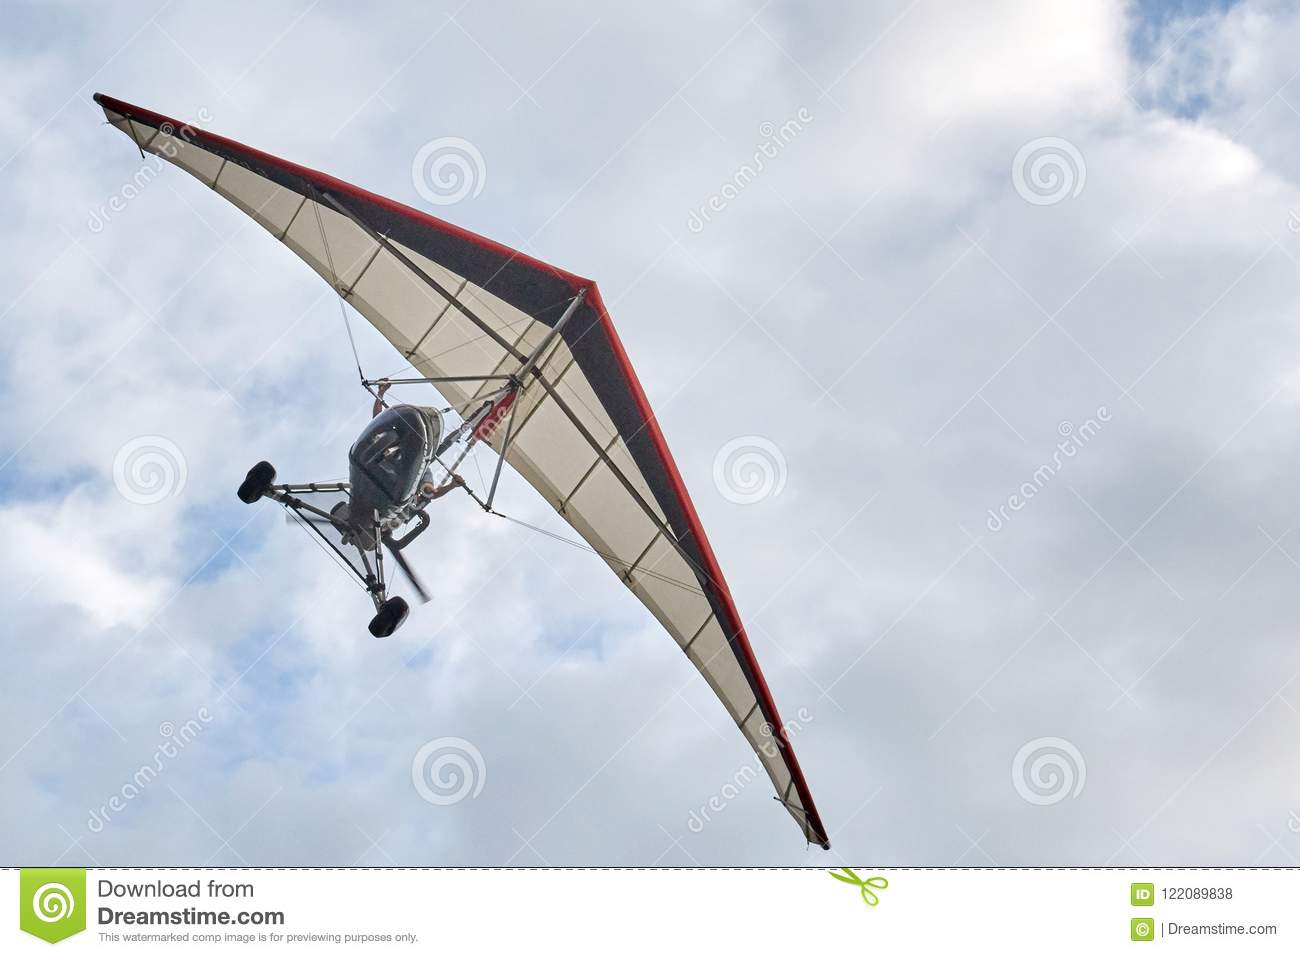 Delta Wing With Engine Flying Cloudy Sky Stock Photo - Image of over